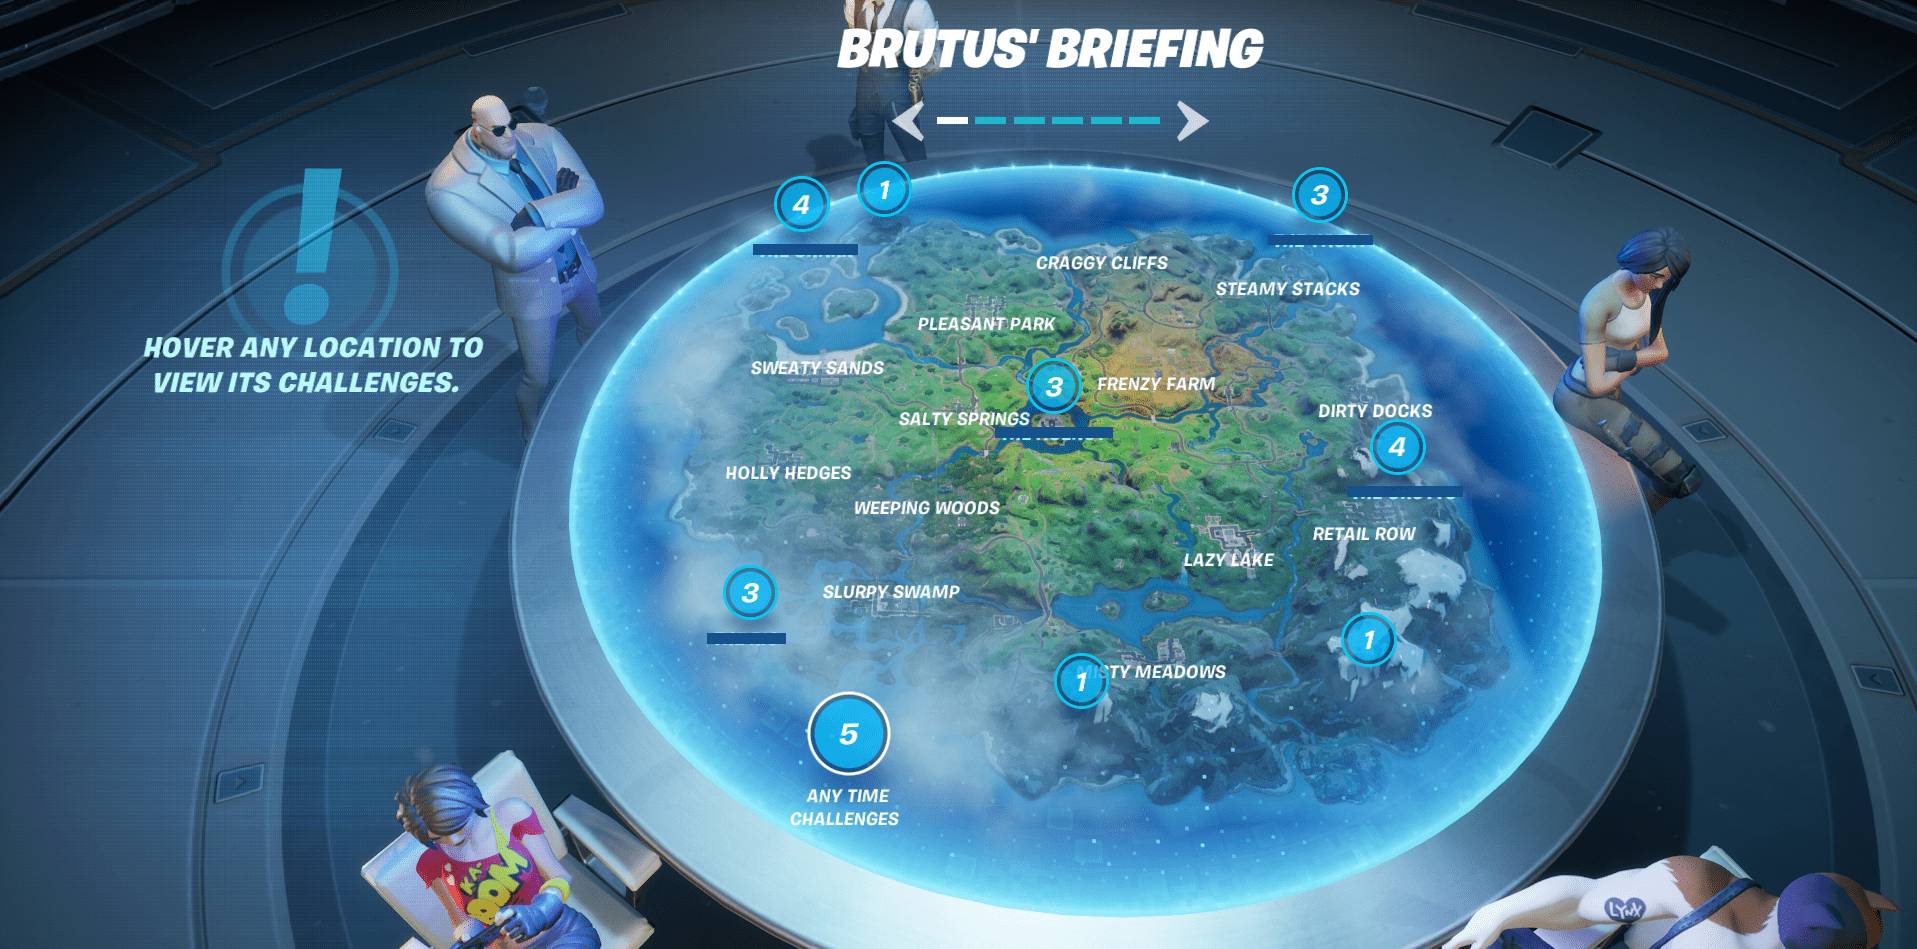 Fortnite Brutus Briefing Challenges